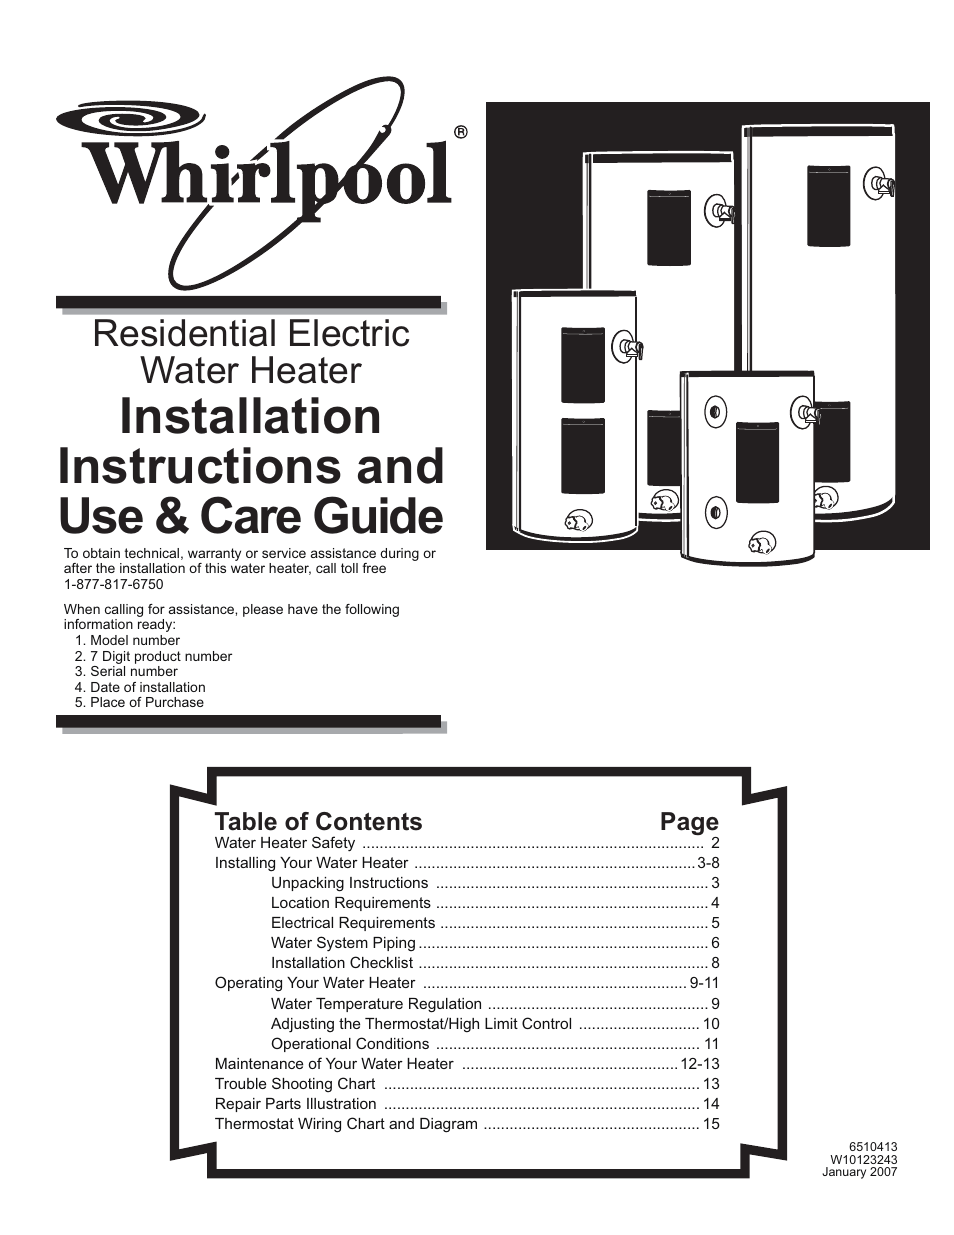 residential thermostat wiring diagram for dimmer switch single pole whirlpool e2f65hd045v user manual | 16 pages also for: 6510413, e2f40hd045v, e2f30hd035v ...